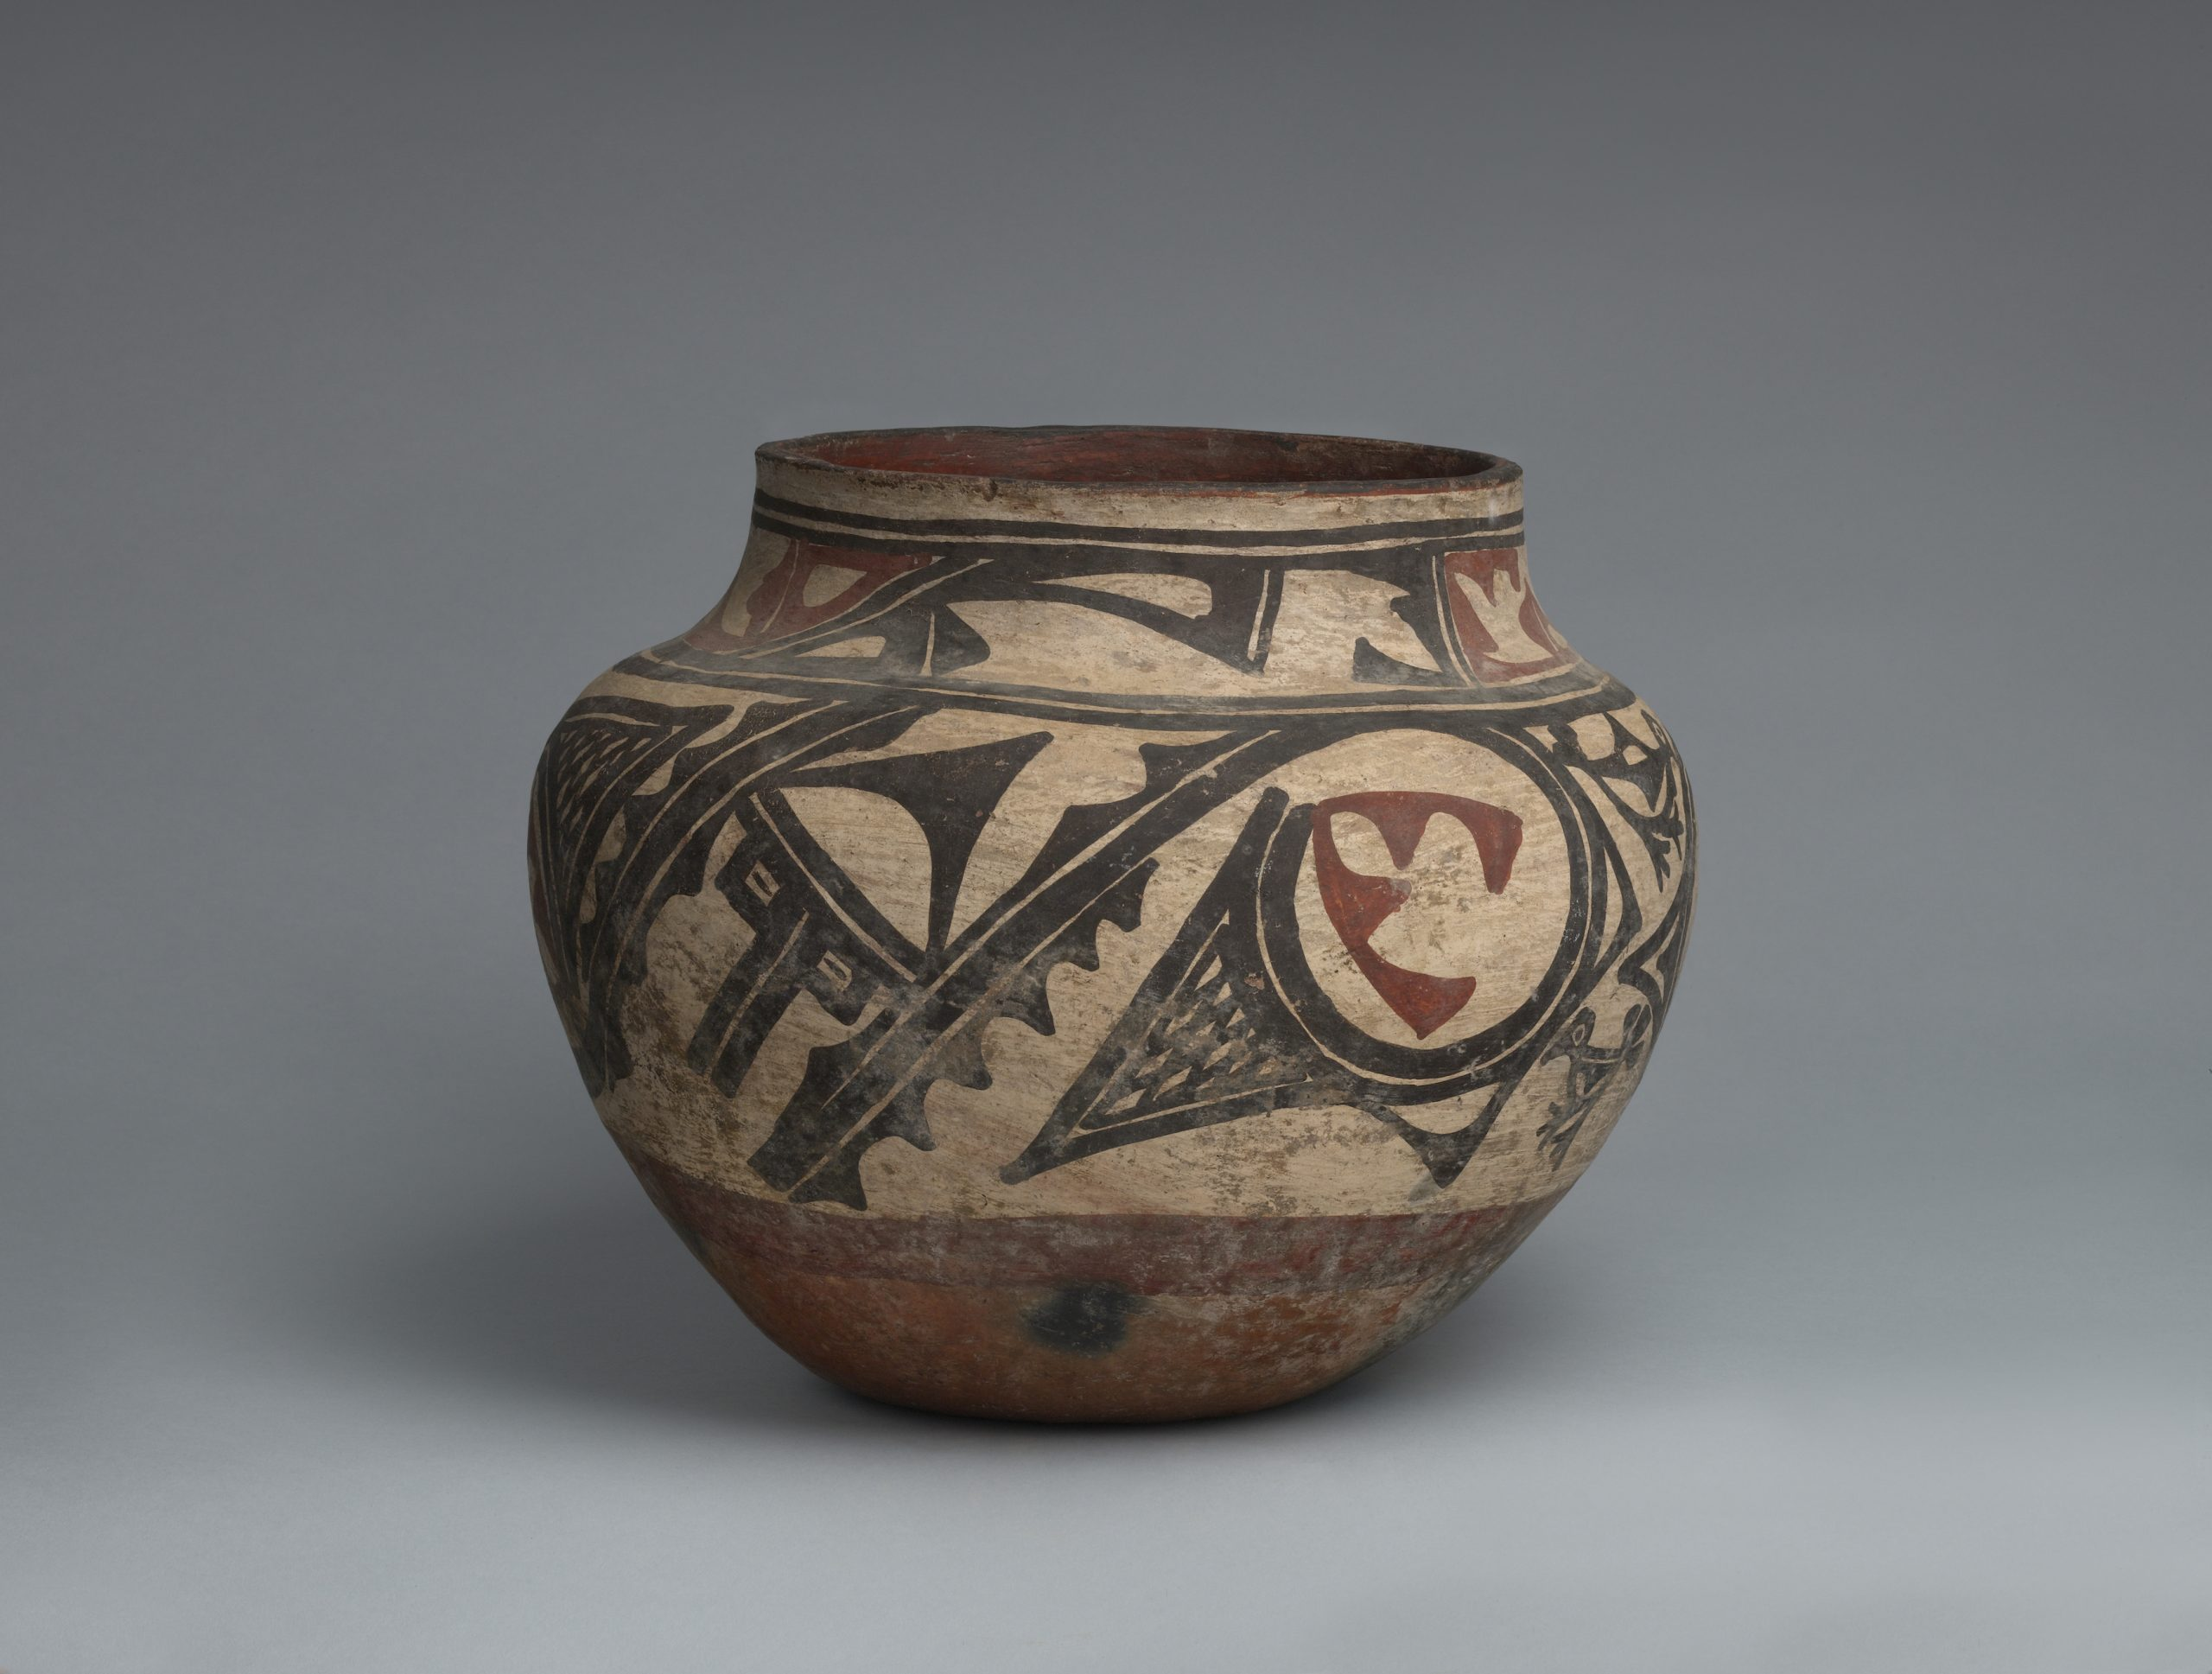 A Zia jar with two bands of abstract geometric designs in black and rust.